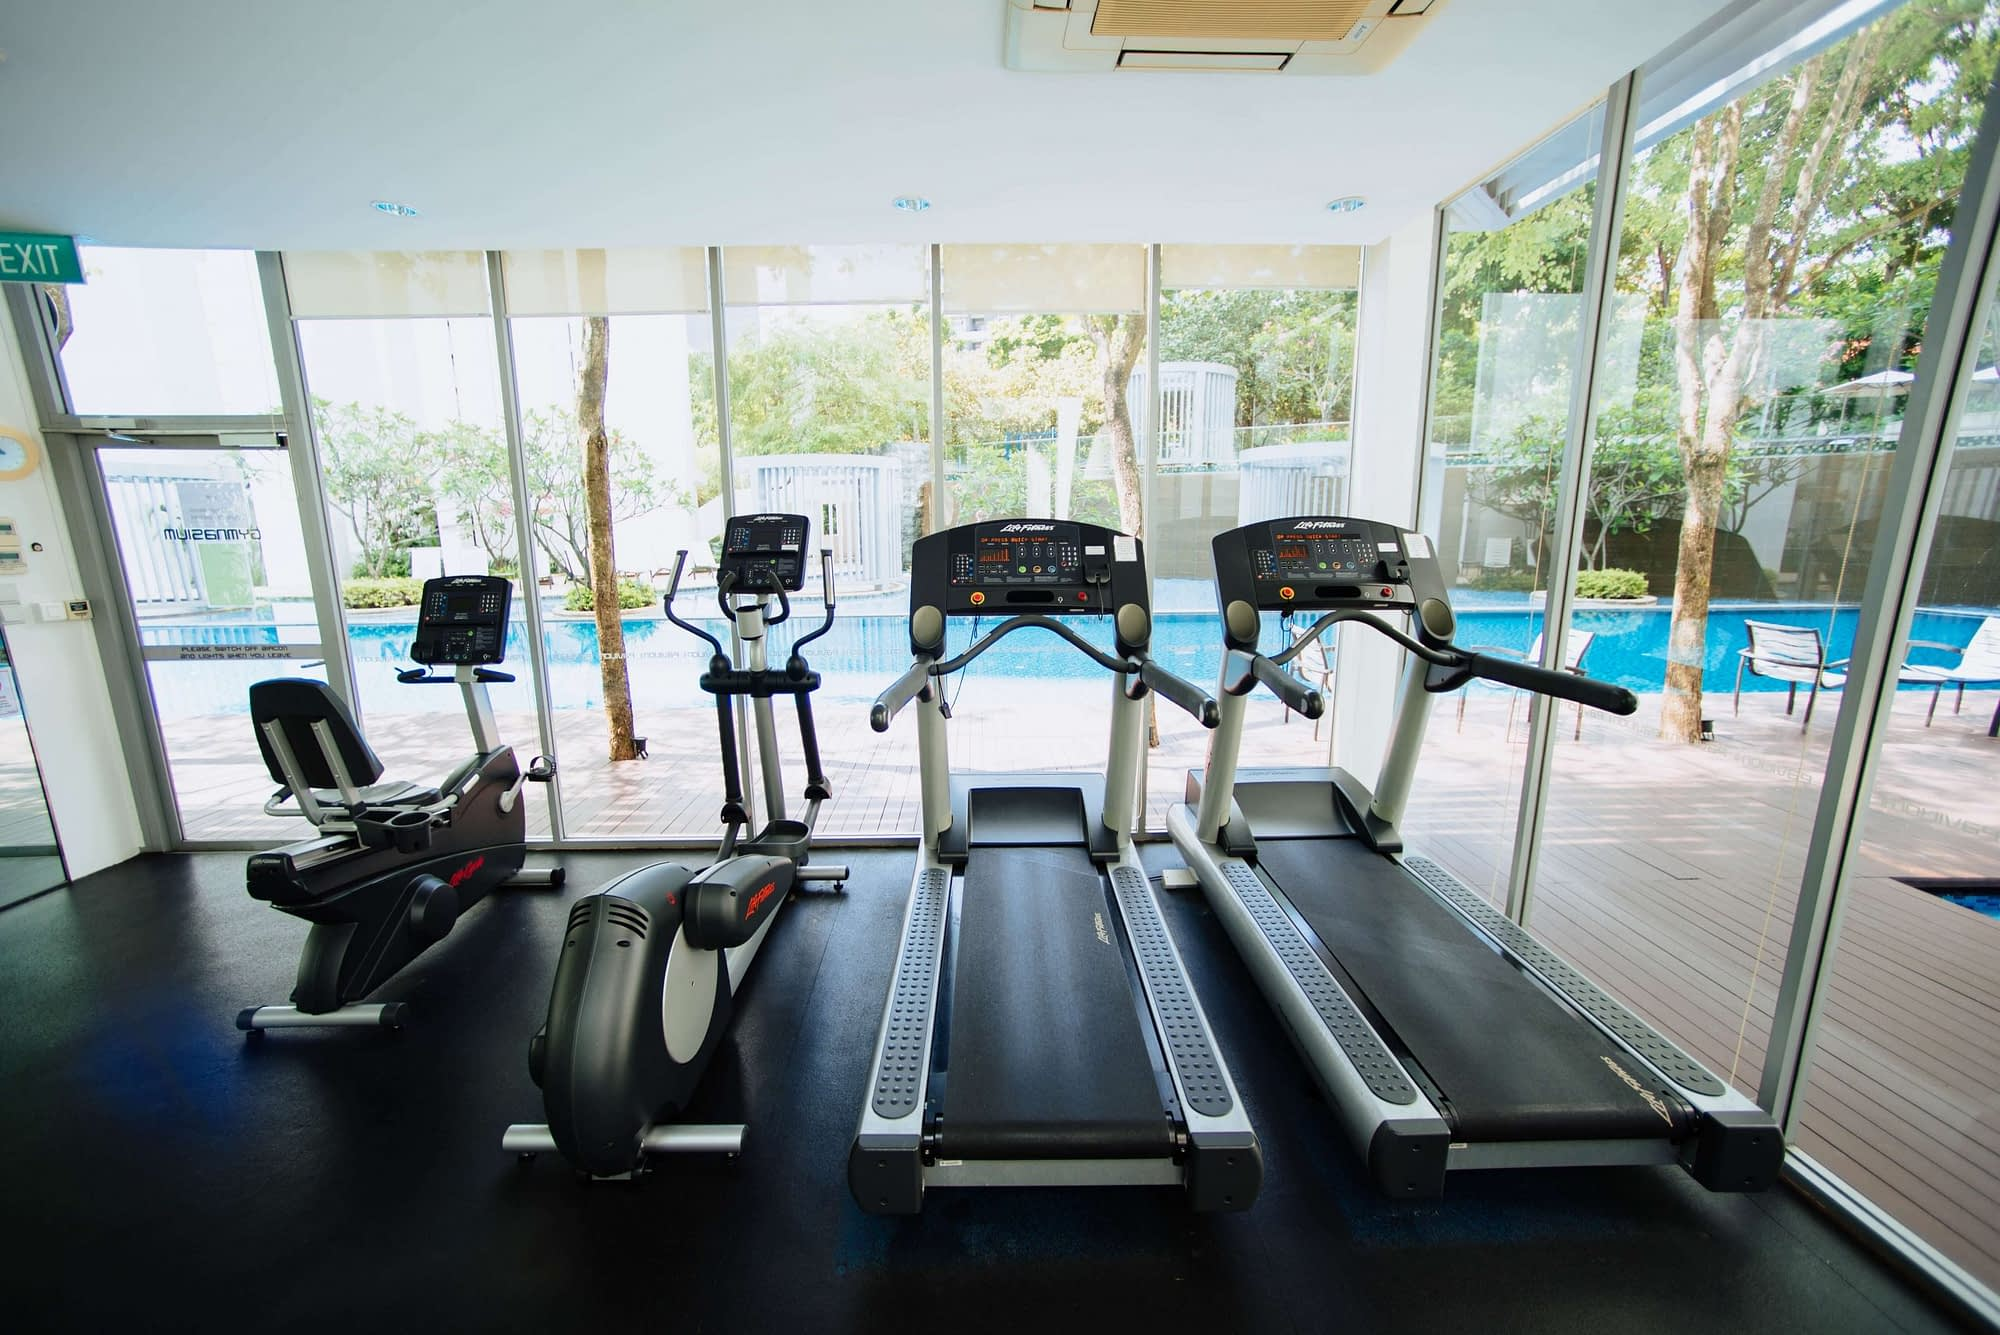 Undoubtedly, the Precor 240i StretchTrainer is one of the best home exercise equipment for weight loss on the market in terms of popularity